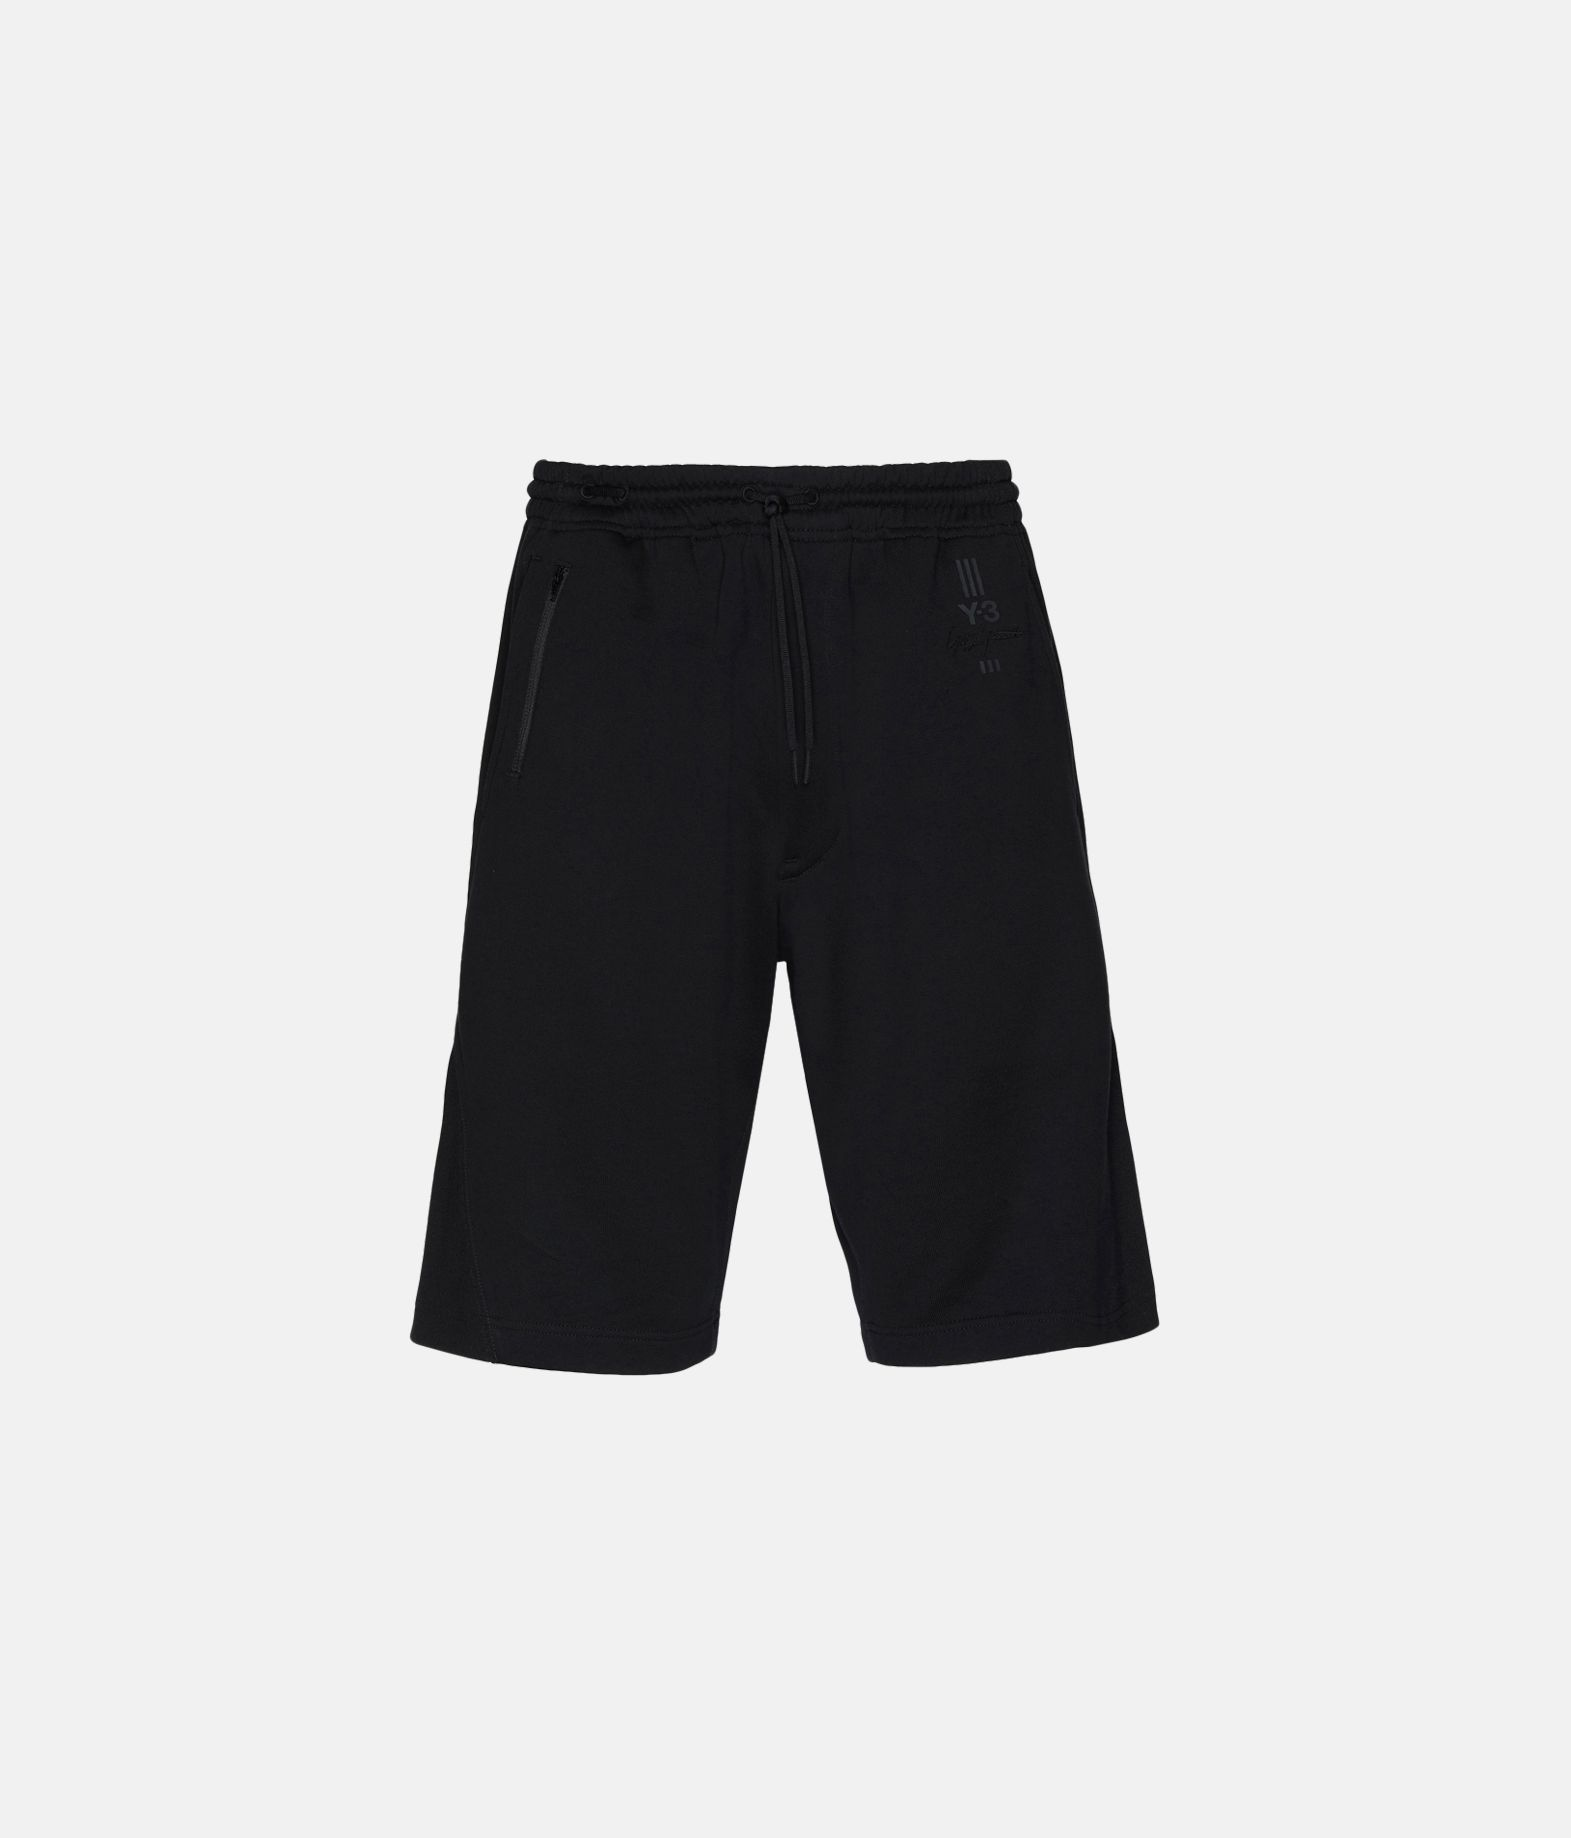 Y-3 Y-3 New Classic Shorts Sweat shorts Man f